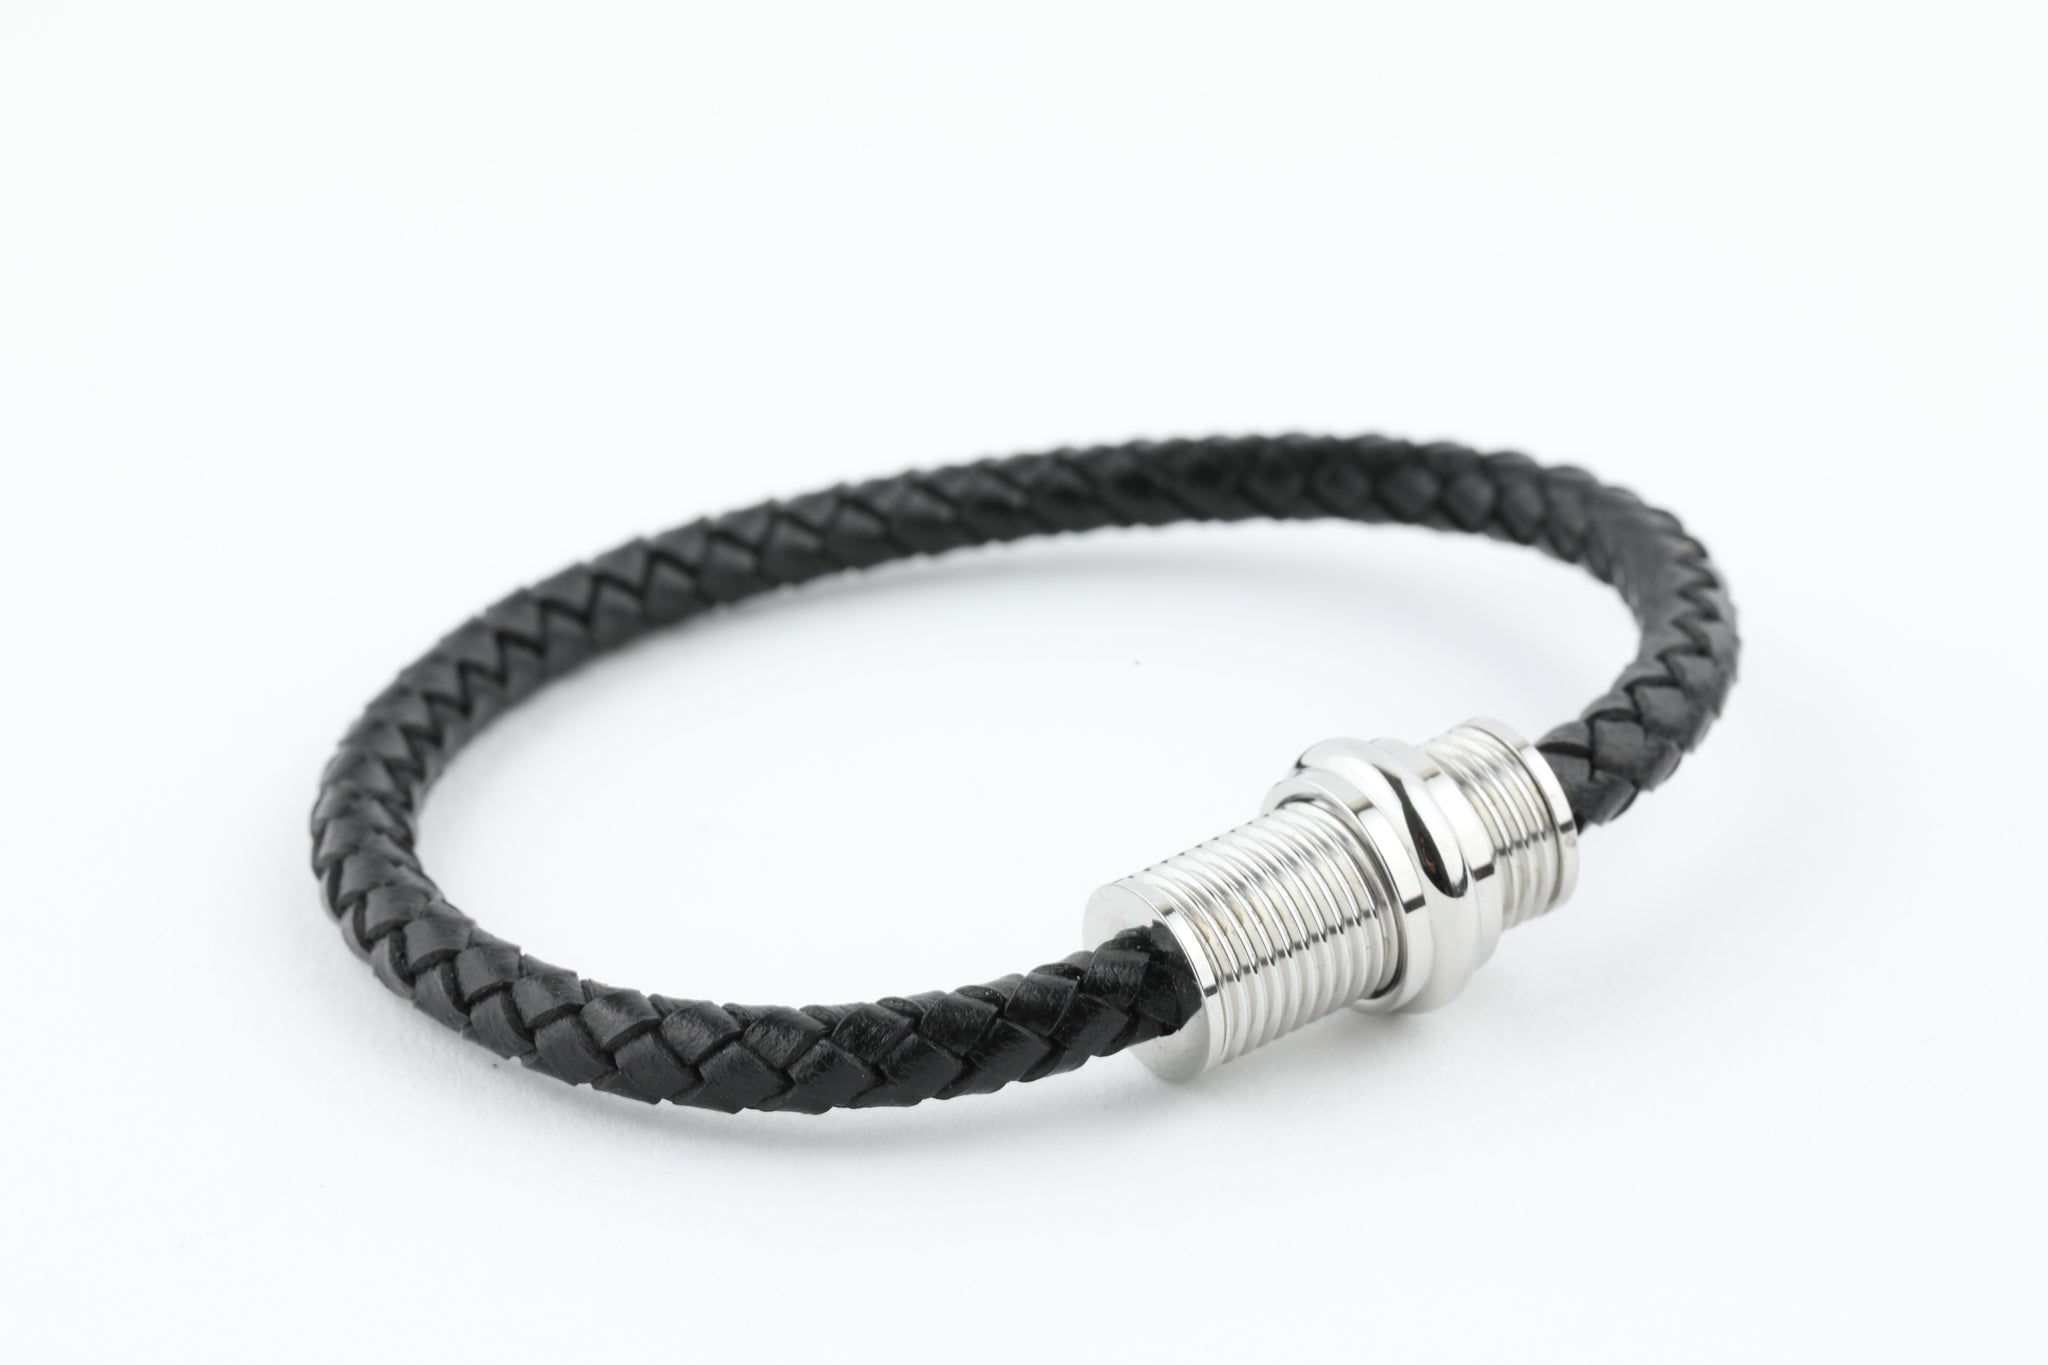 bracelets products bracelet ankle anklet leather clasp charm magnetic mens steel stainless